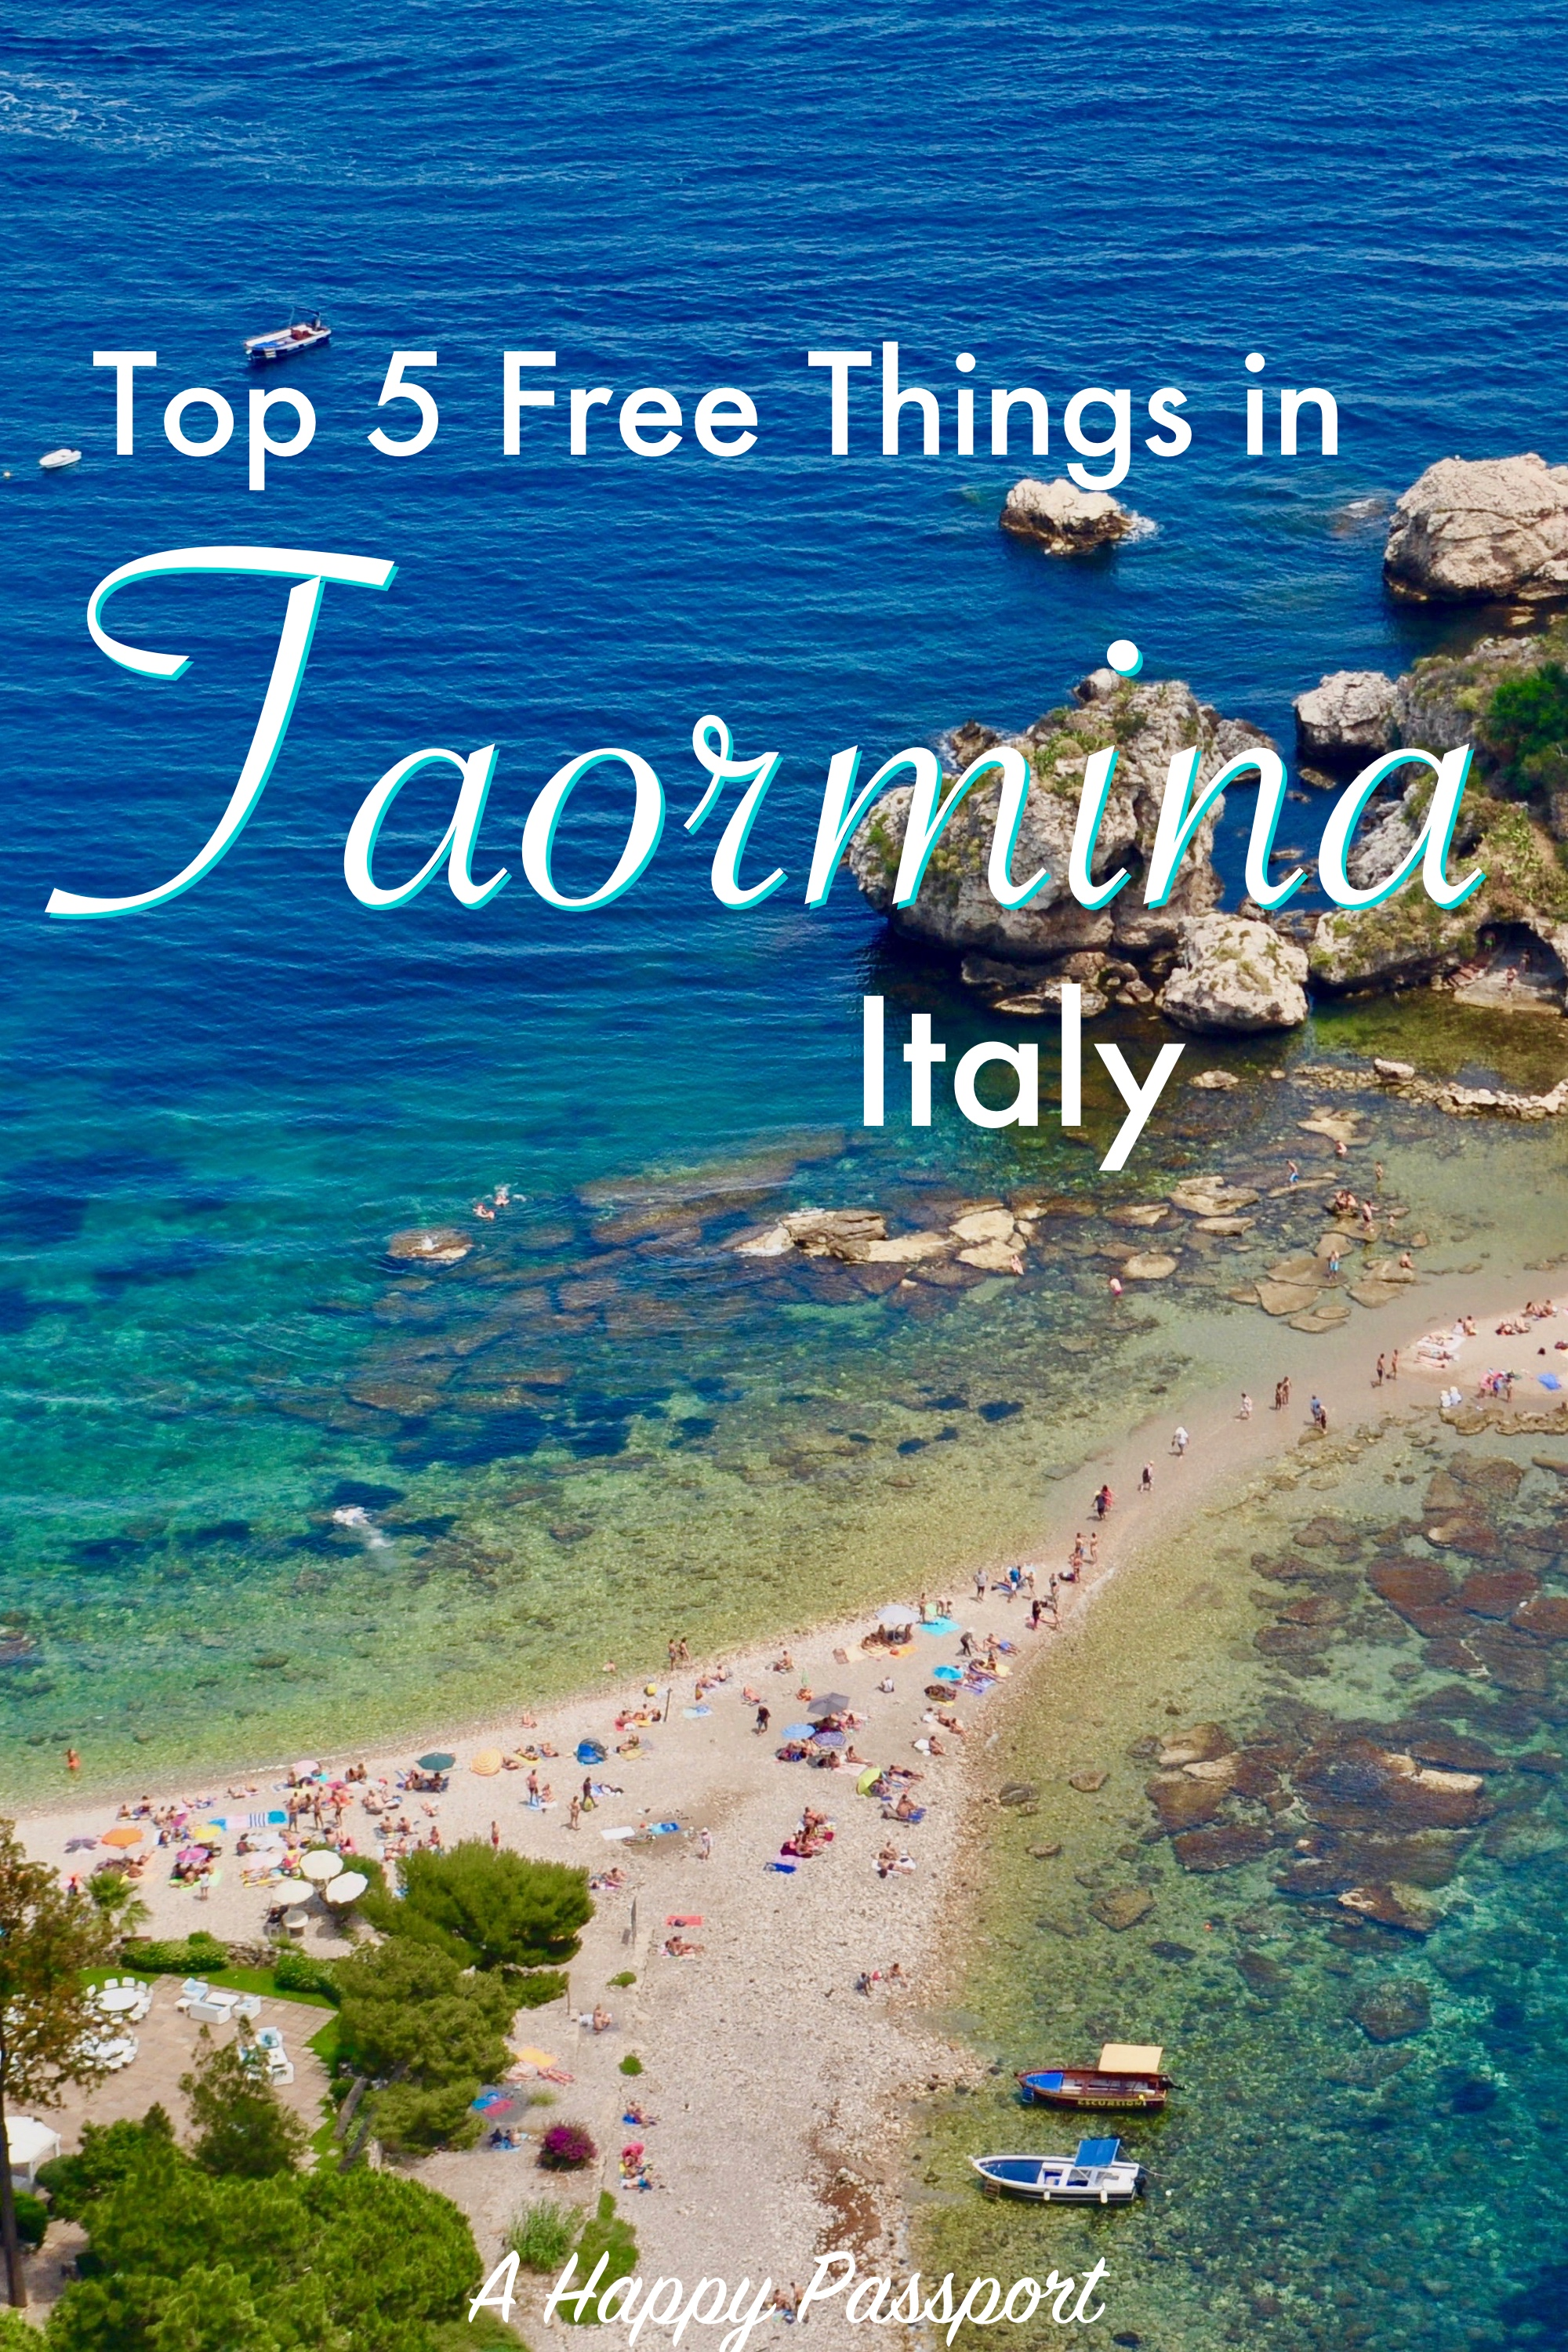 Top 5 Free Things to See in Taormina, Sicily, Italy - A Happy Passport #italy #sicily #taormina